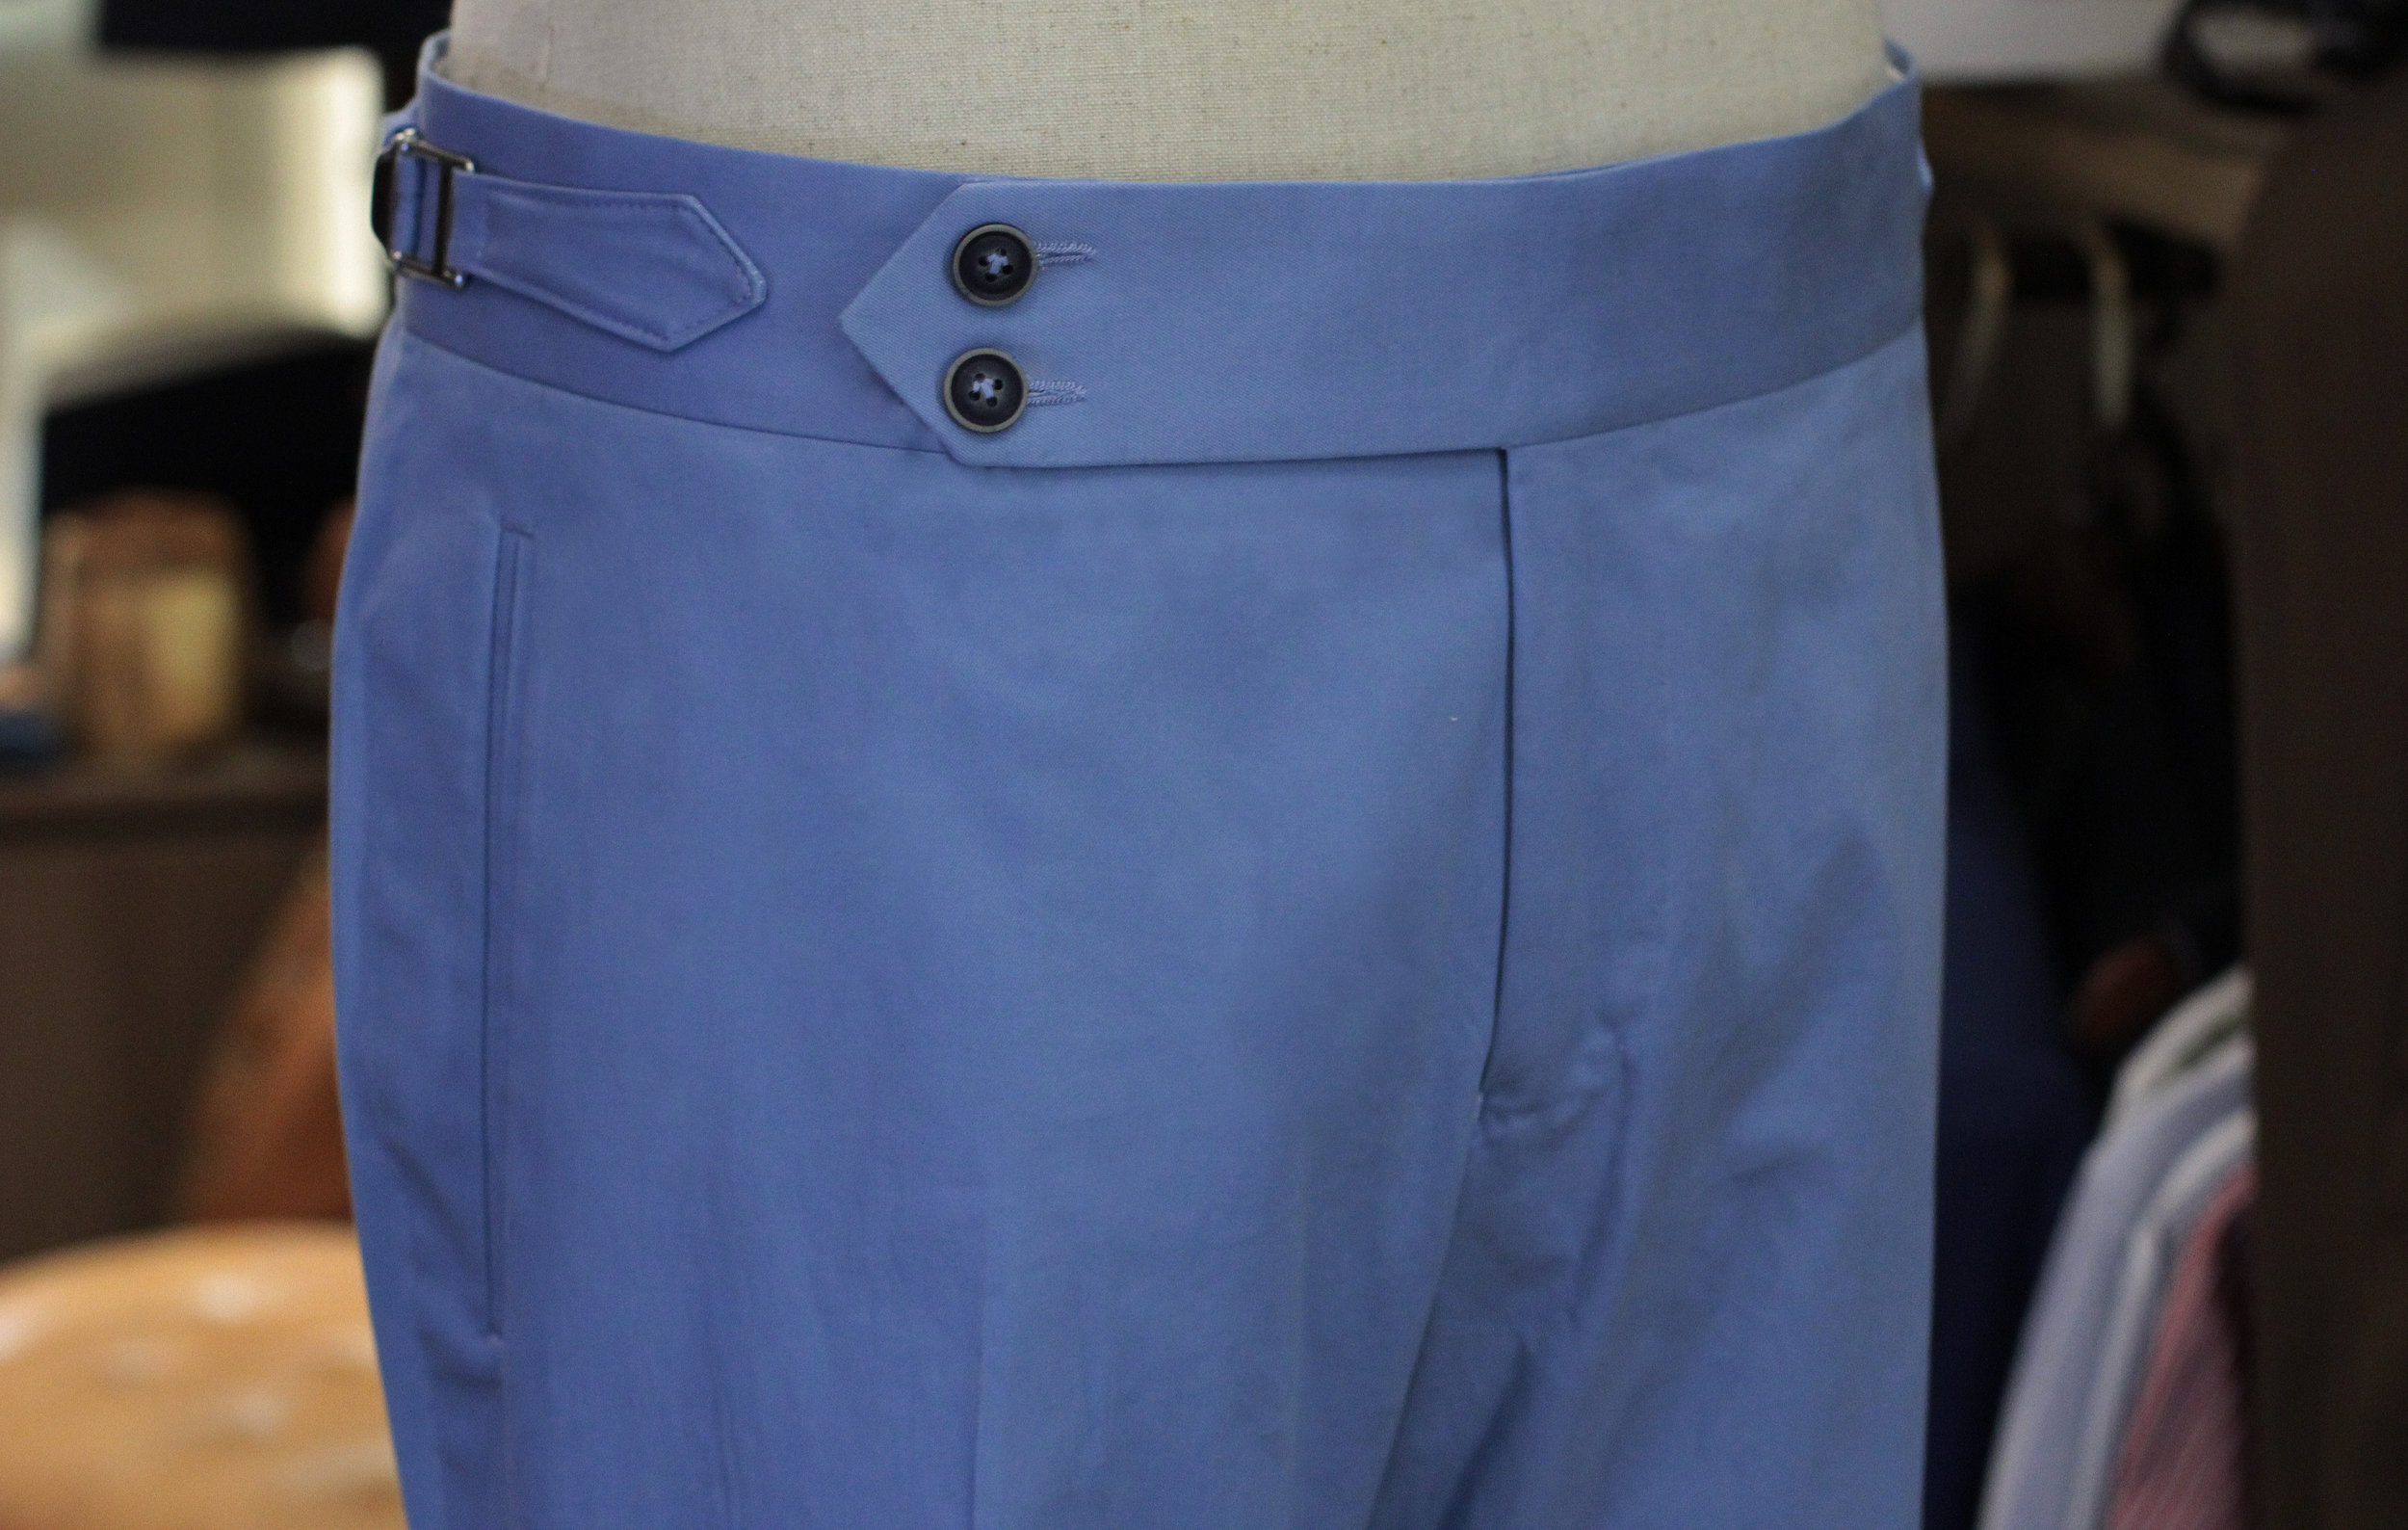 Light Blue Chino Cotton Made Suits Made to measure chinos trousers casual pants.JPG